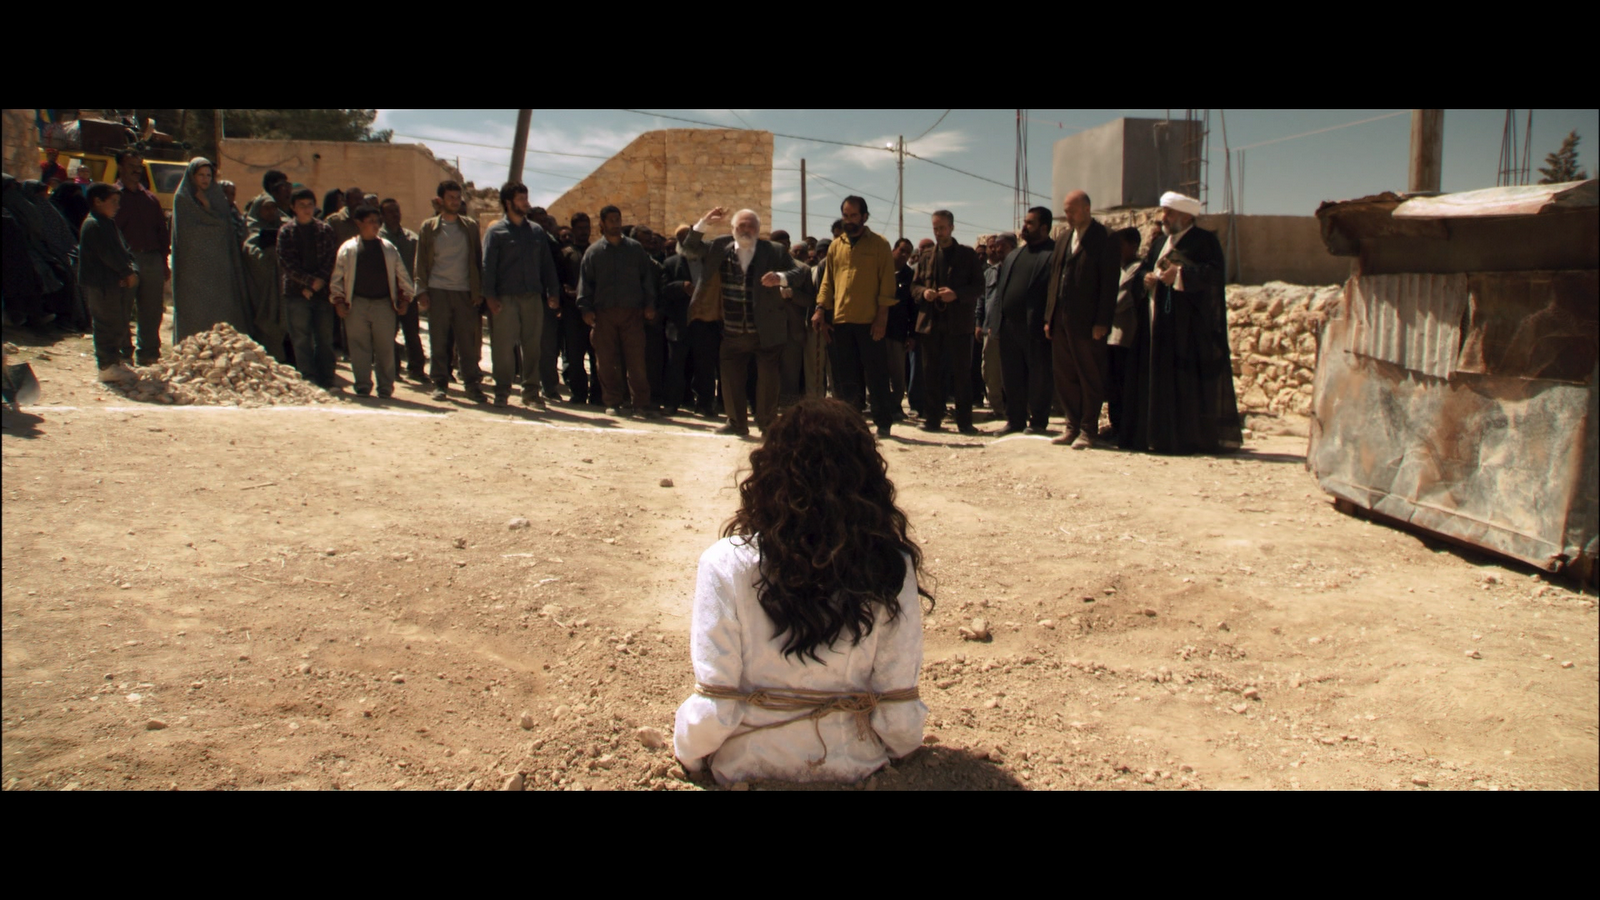 Scene from the film The Stoning Of Soraya M.